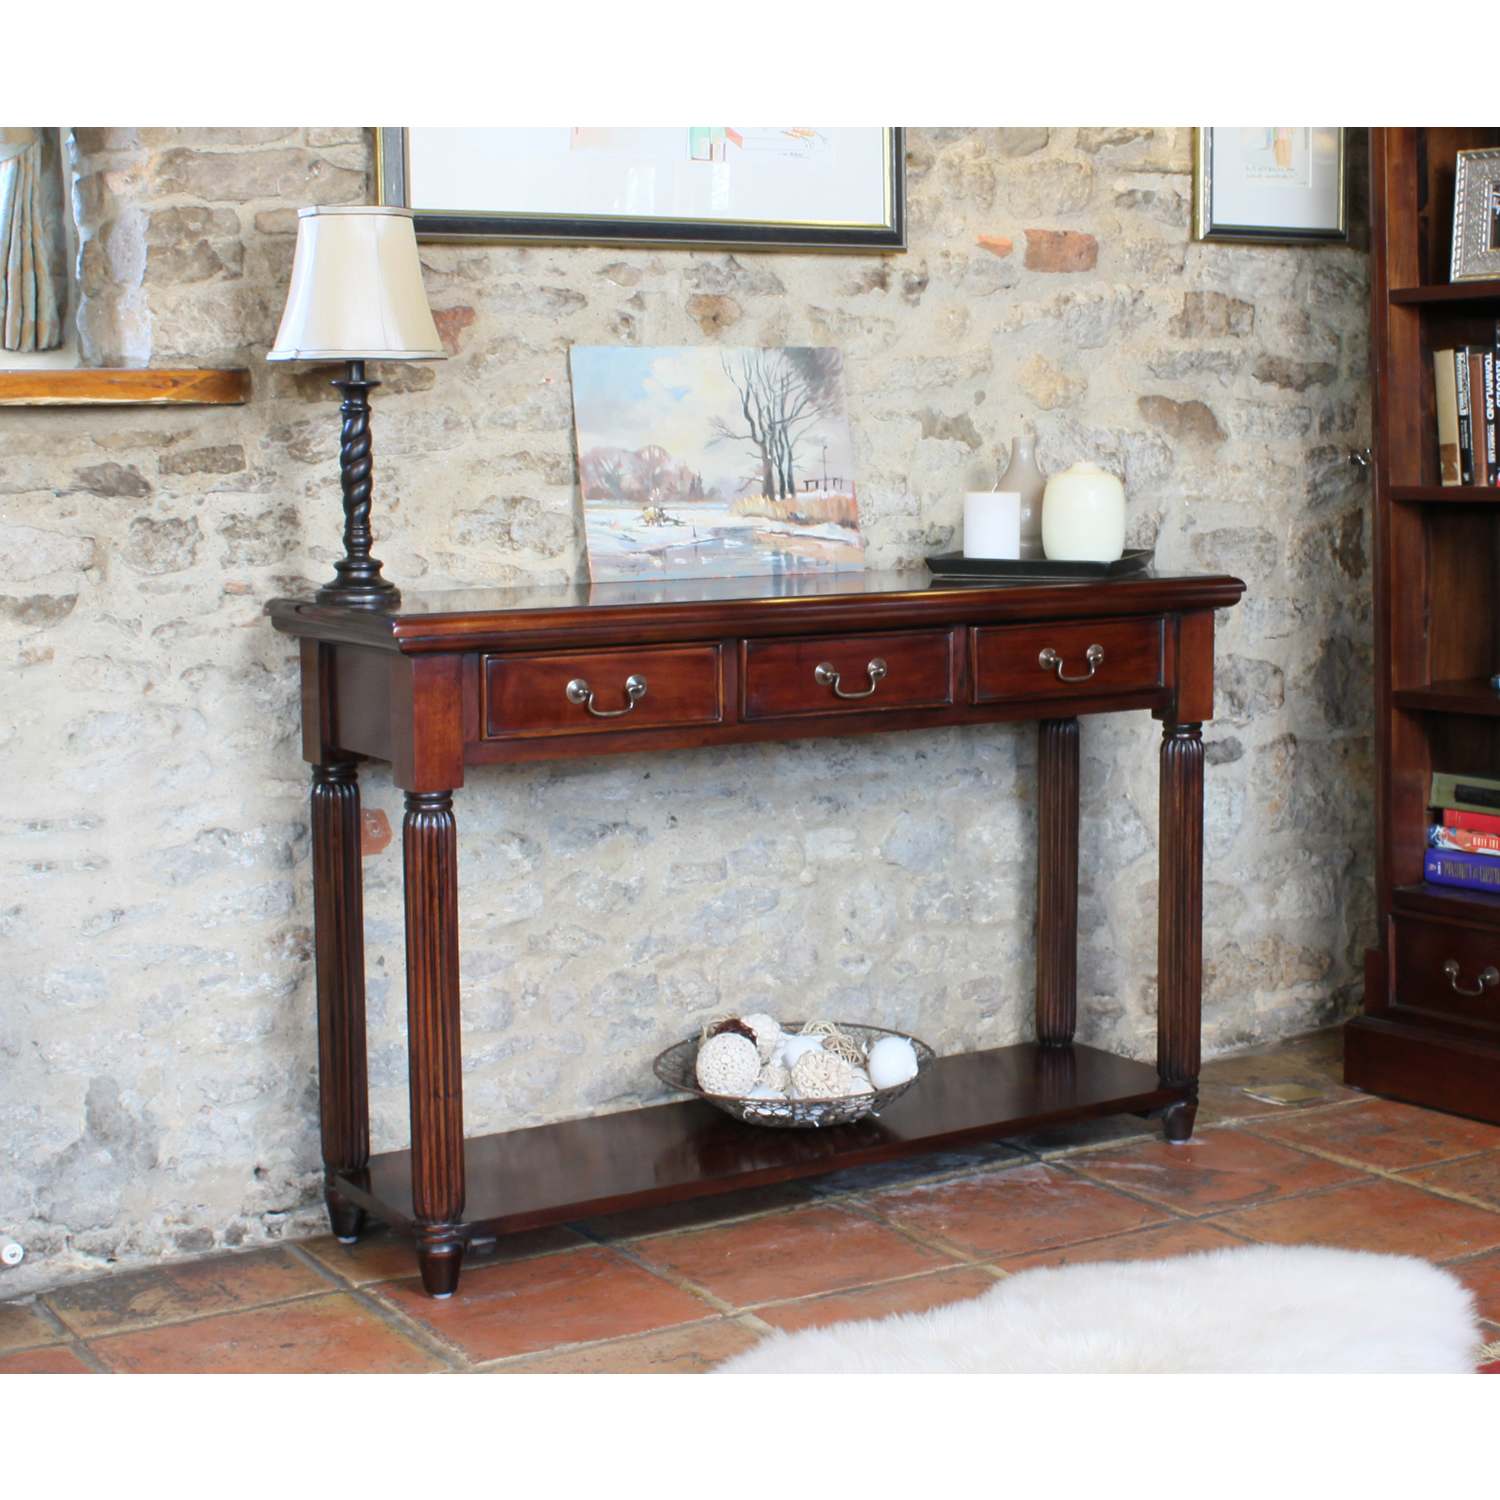 Baumhaus La Roque Console / Hall Table (With Drawers)